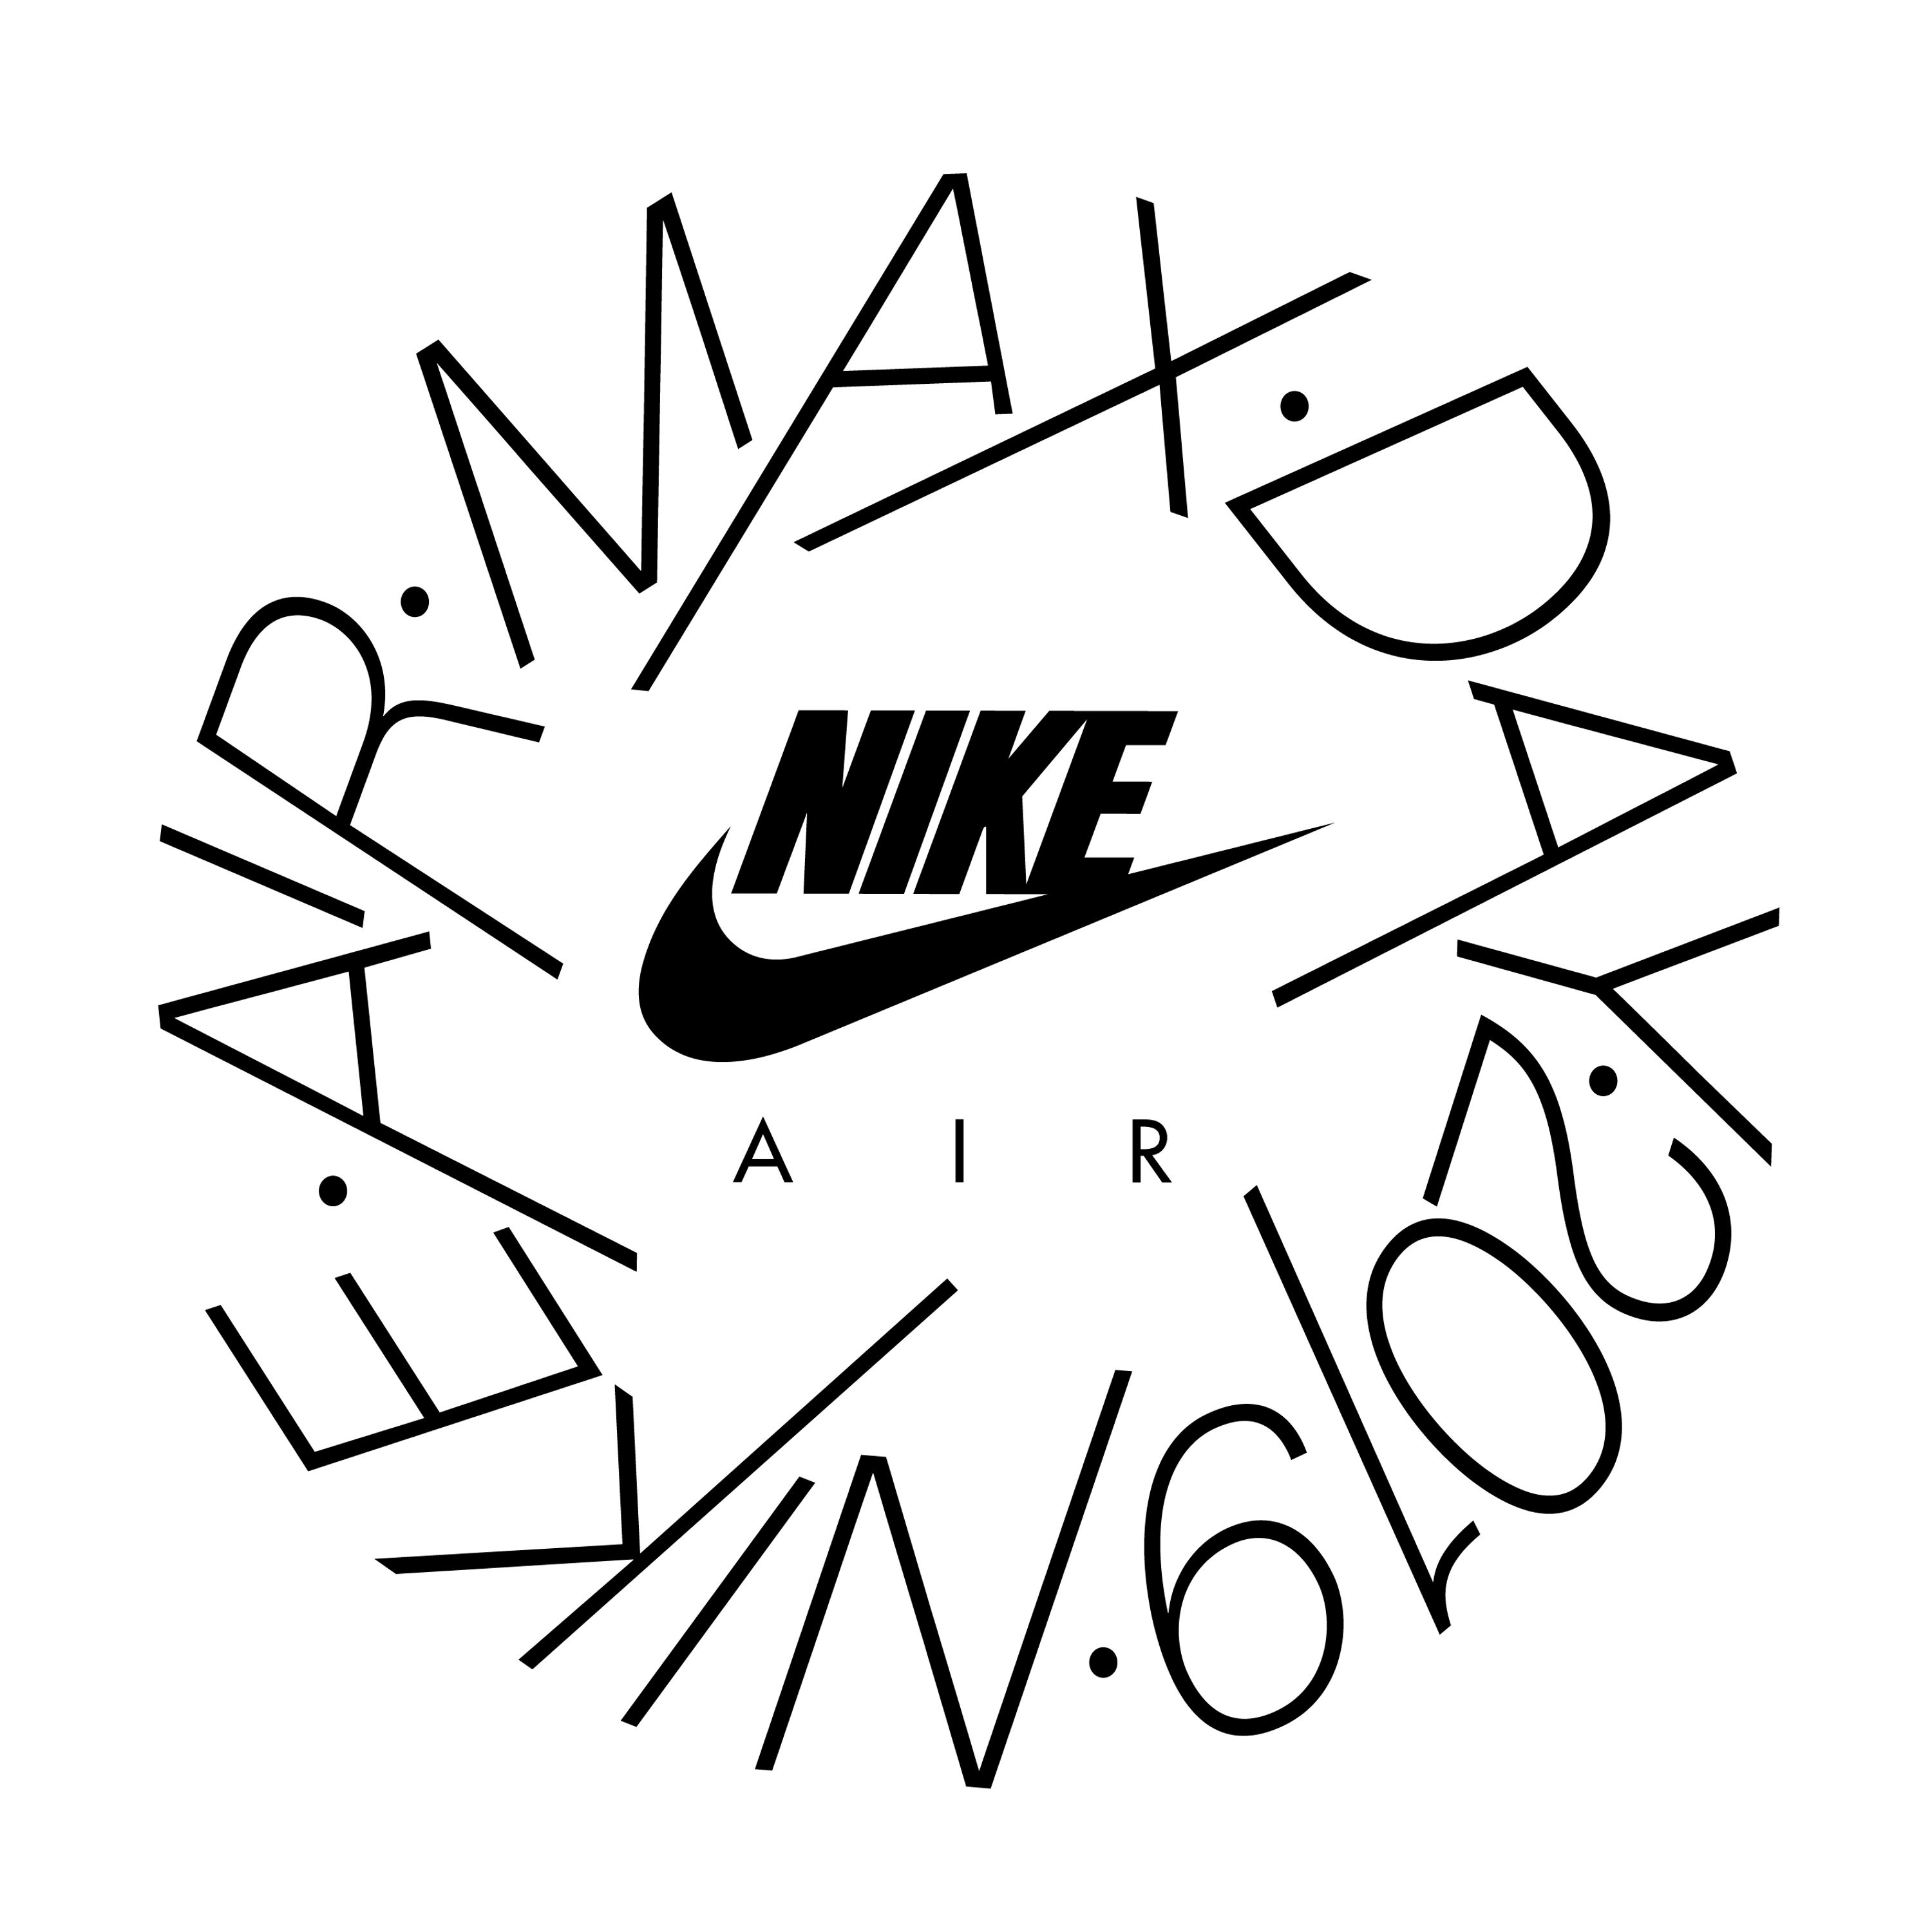 Nike Air Max Day crest